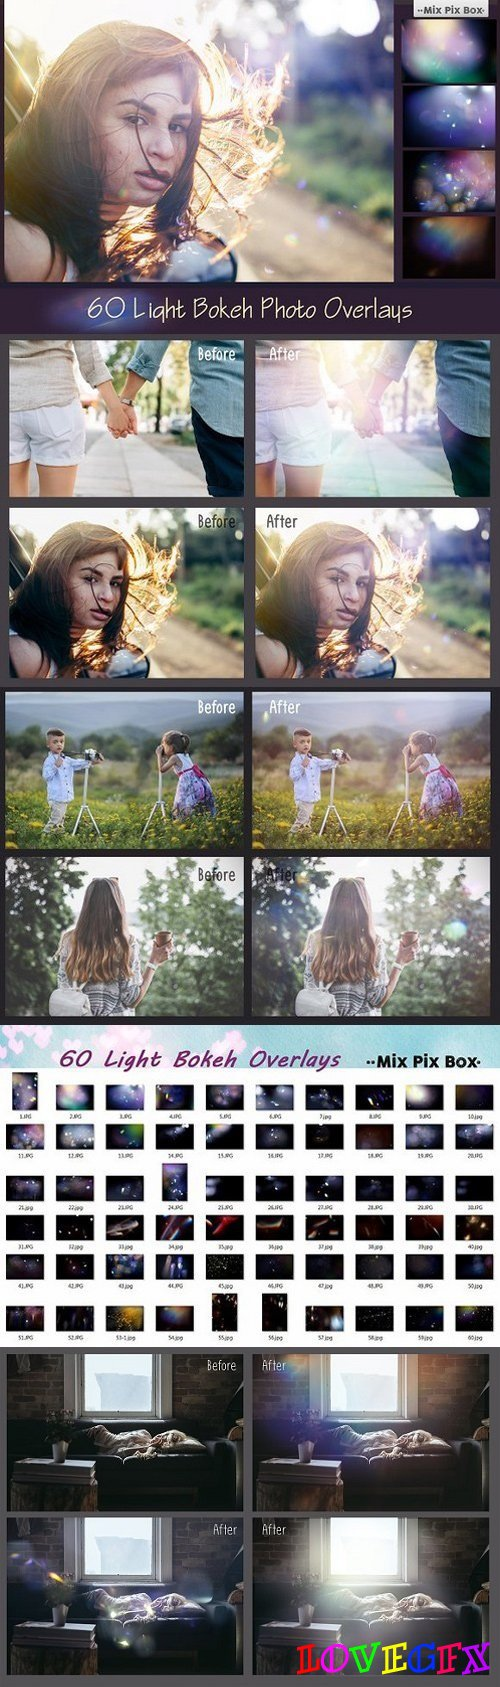 60 Light Bokeh Overlays 700451